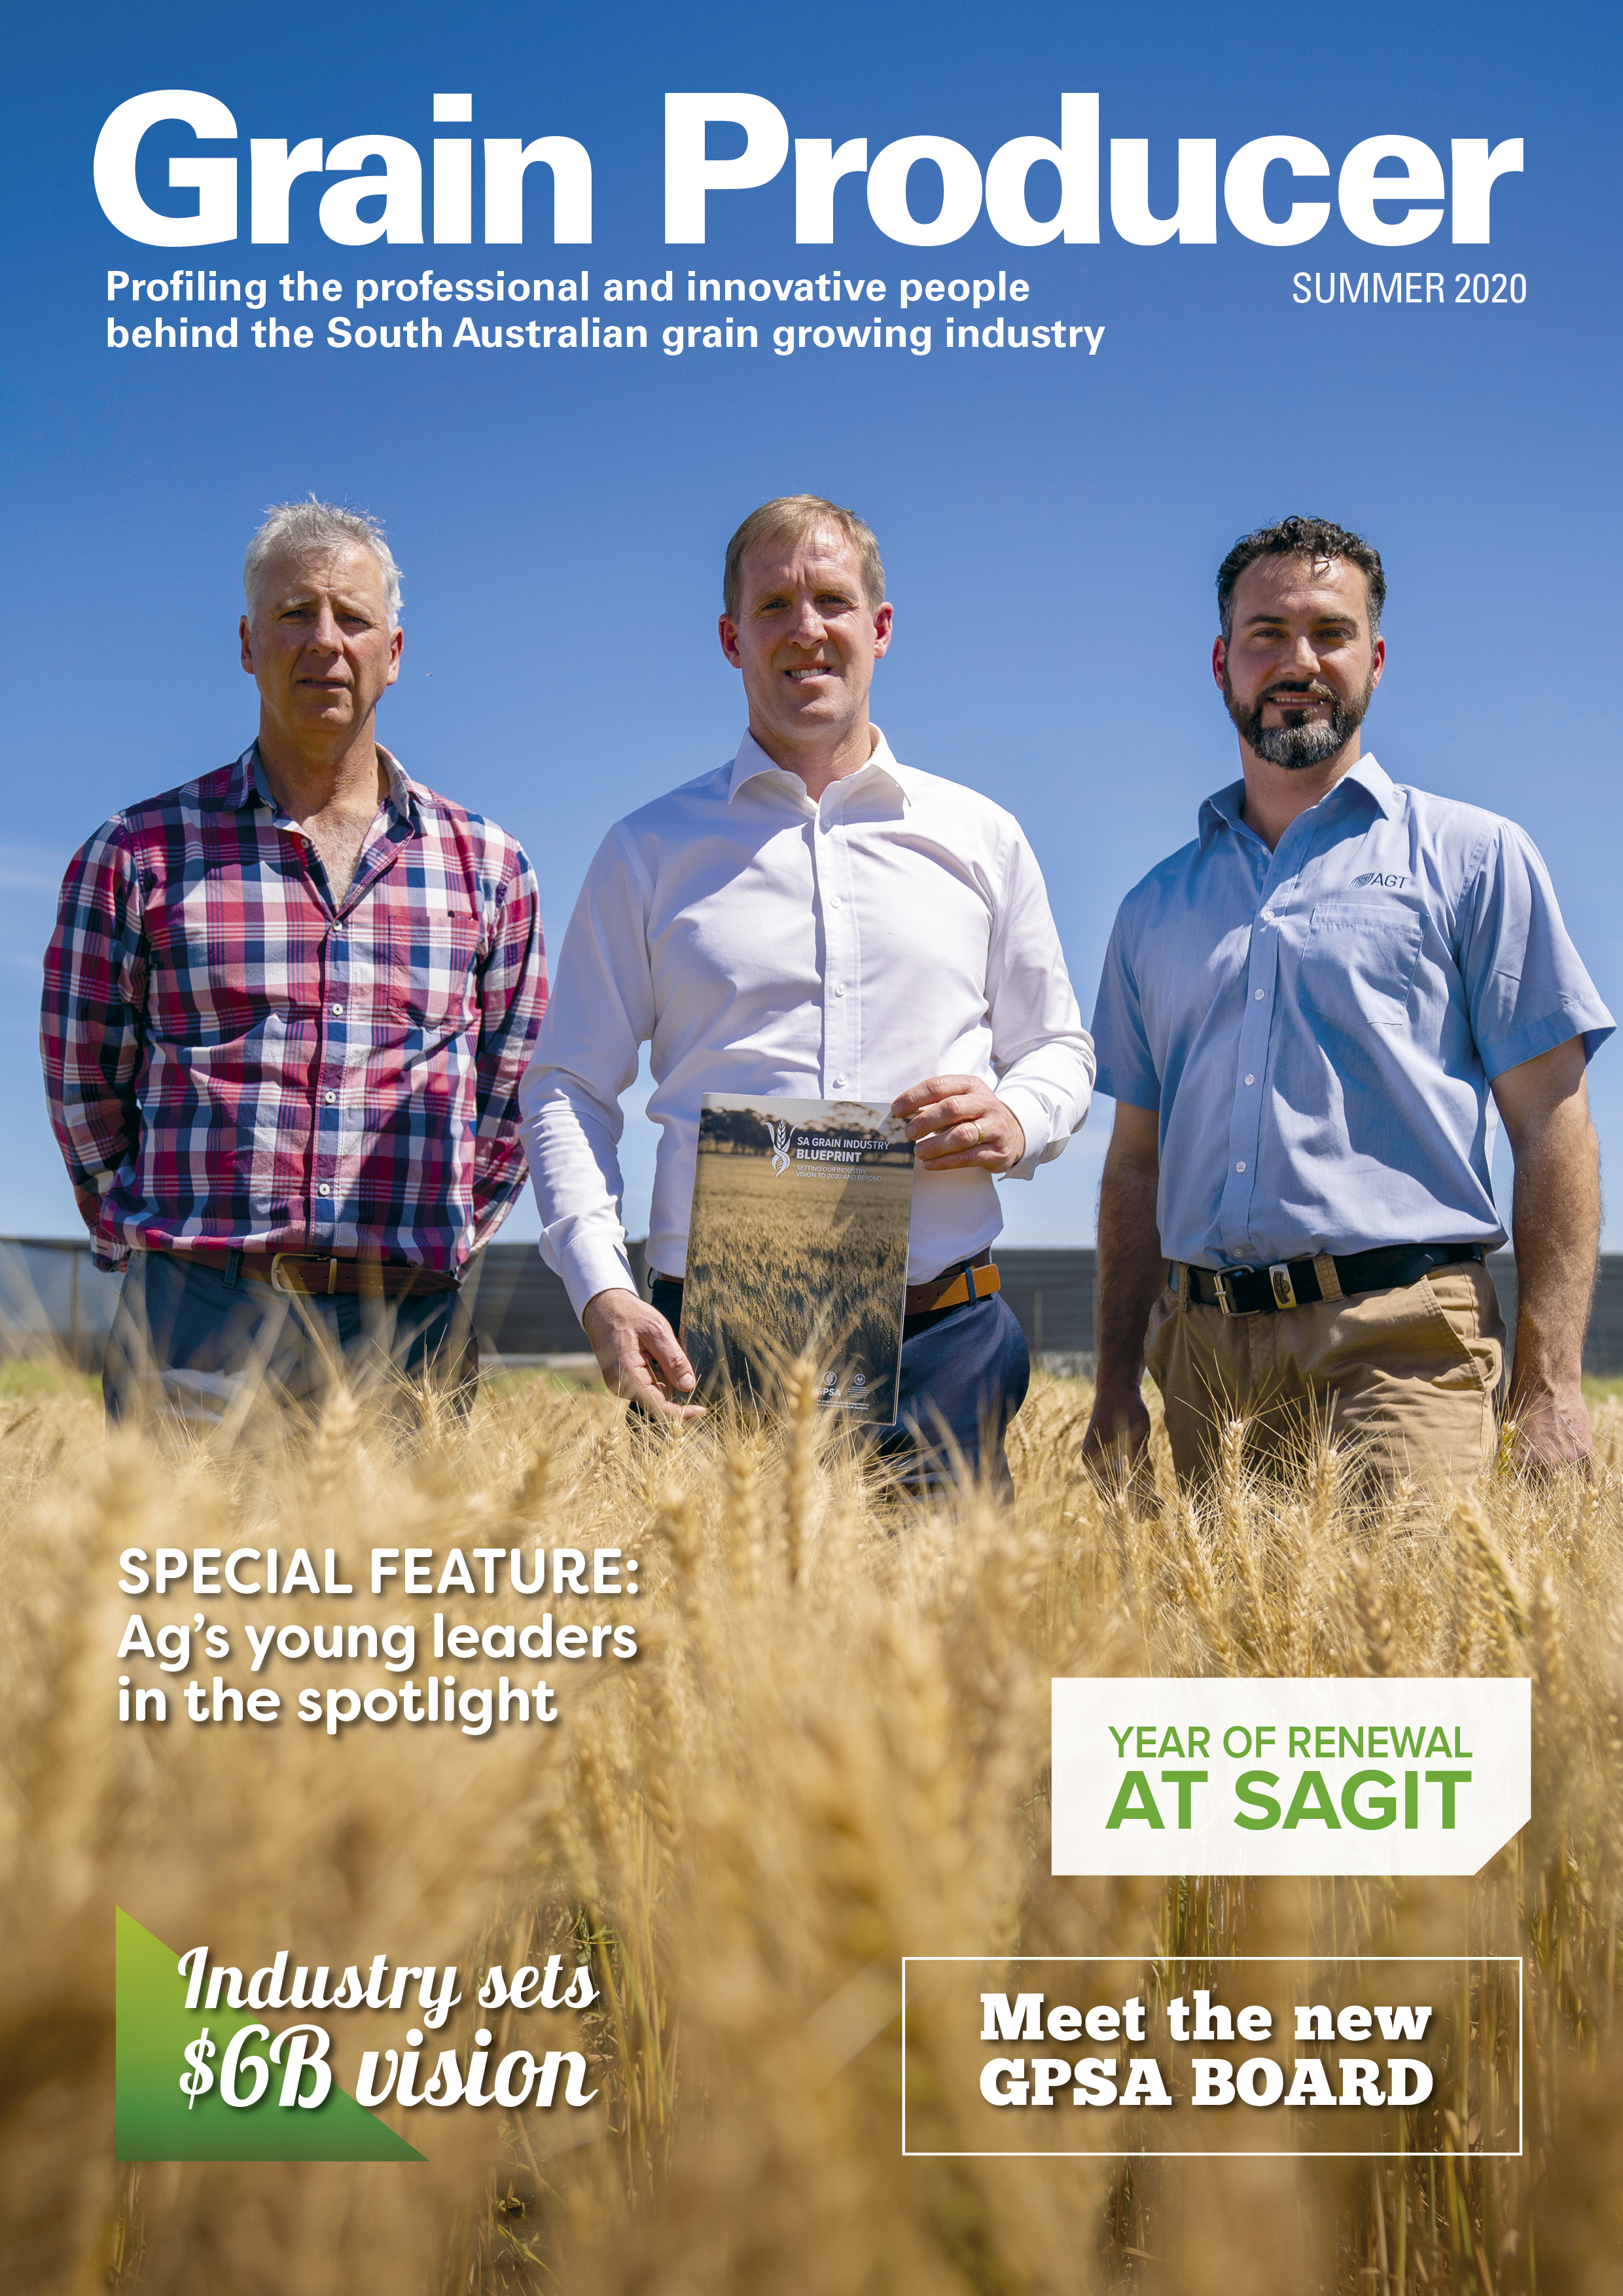 Front cover of Grain Producer - Summer 2020 edition